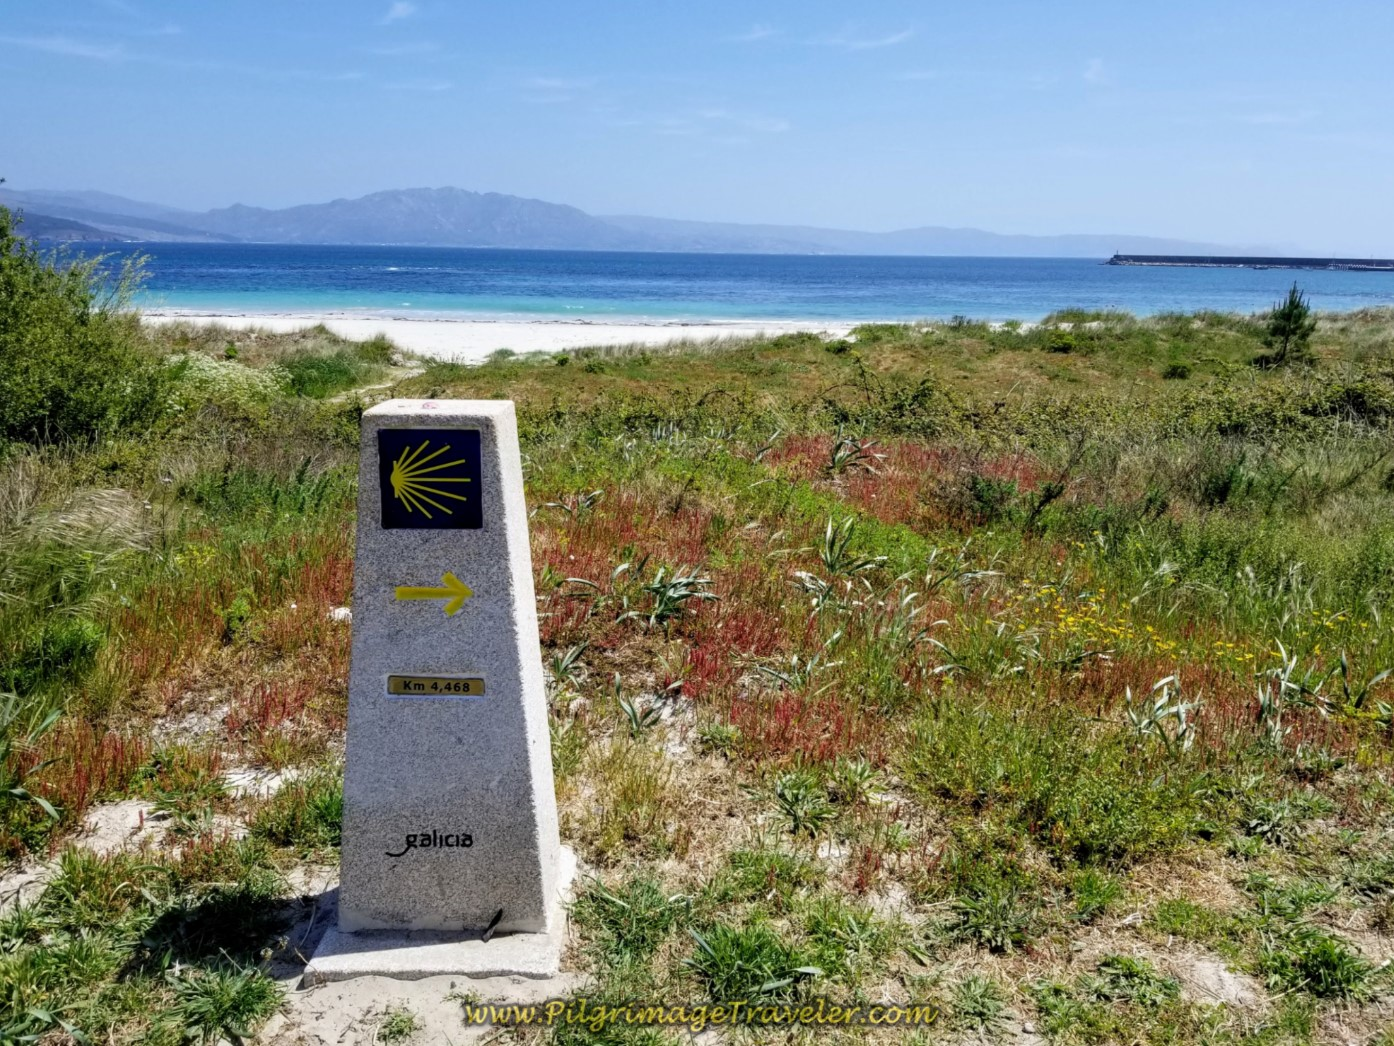 4.468 Kilometer Marker Along the Beach